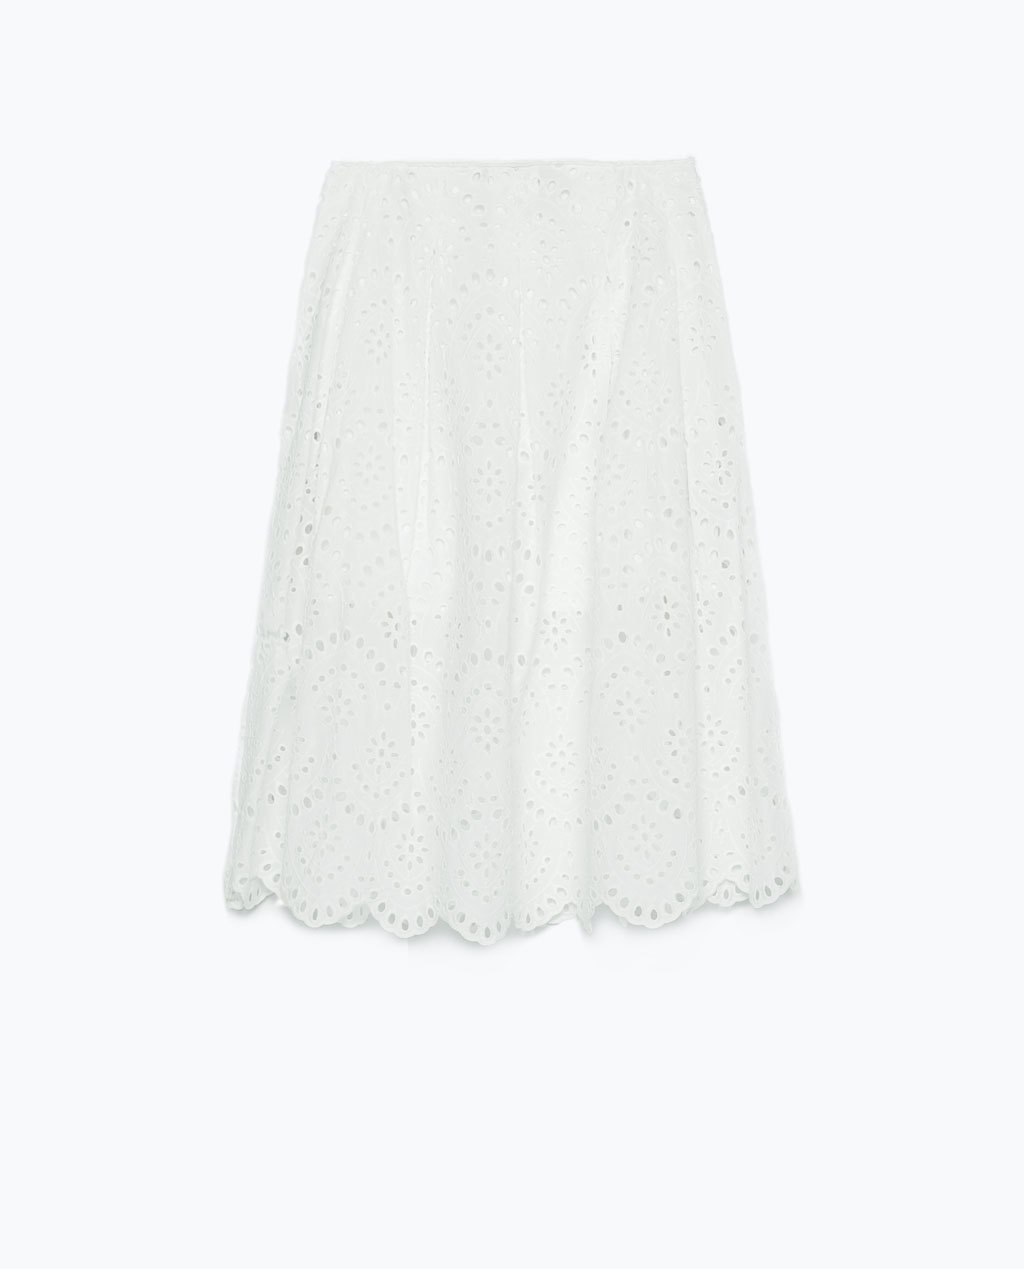 Long Laser Cut Skirt - length: below the knee; pattern: plain; fit: loose/voluminous; waist: mid/regular rise; predominant colour: white; occasions: casual, occasion, creative work; style: a-line; fibres: cotton - 100%; pattern type: fabric; texture group: broiderie anglais; season: s/s 2015; wardrobe: highlight